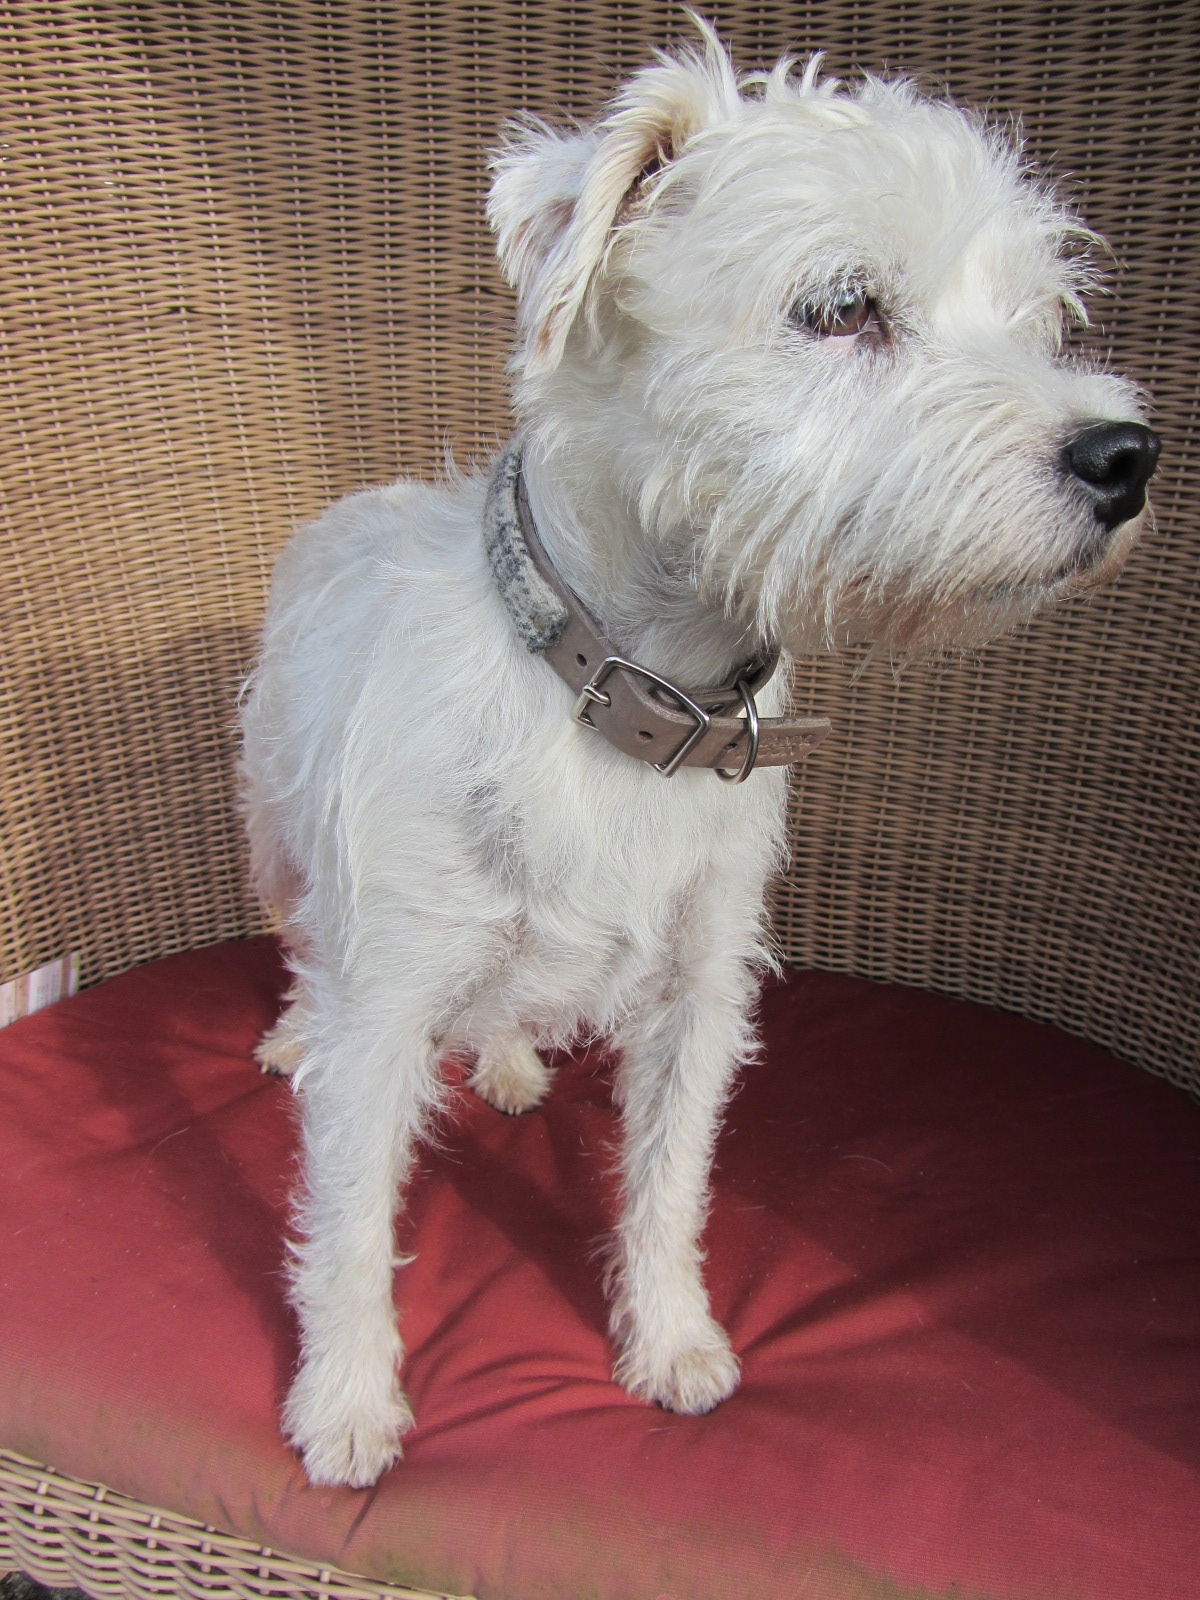 Titine the gorgeous rescue terrier in her limited edition Harris tweed and leather collar in Belgium